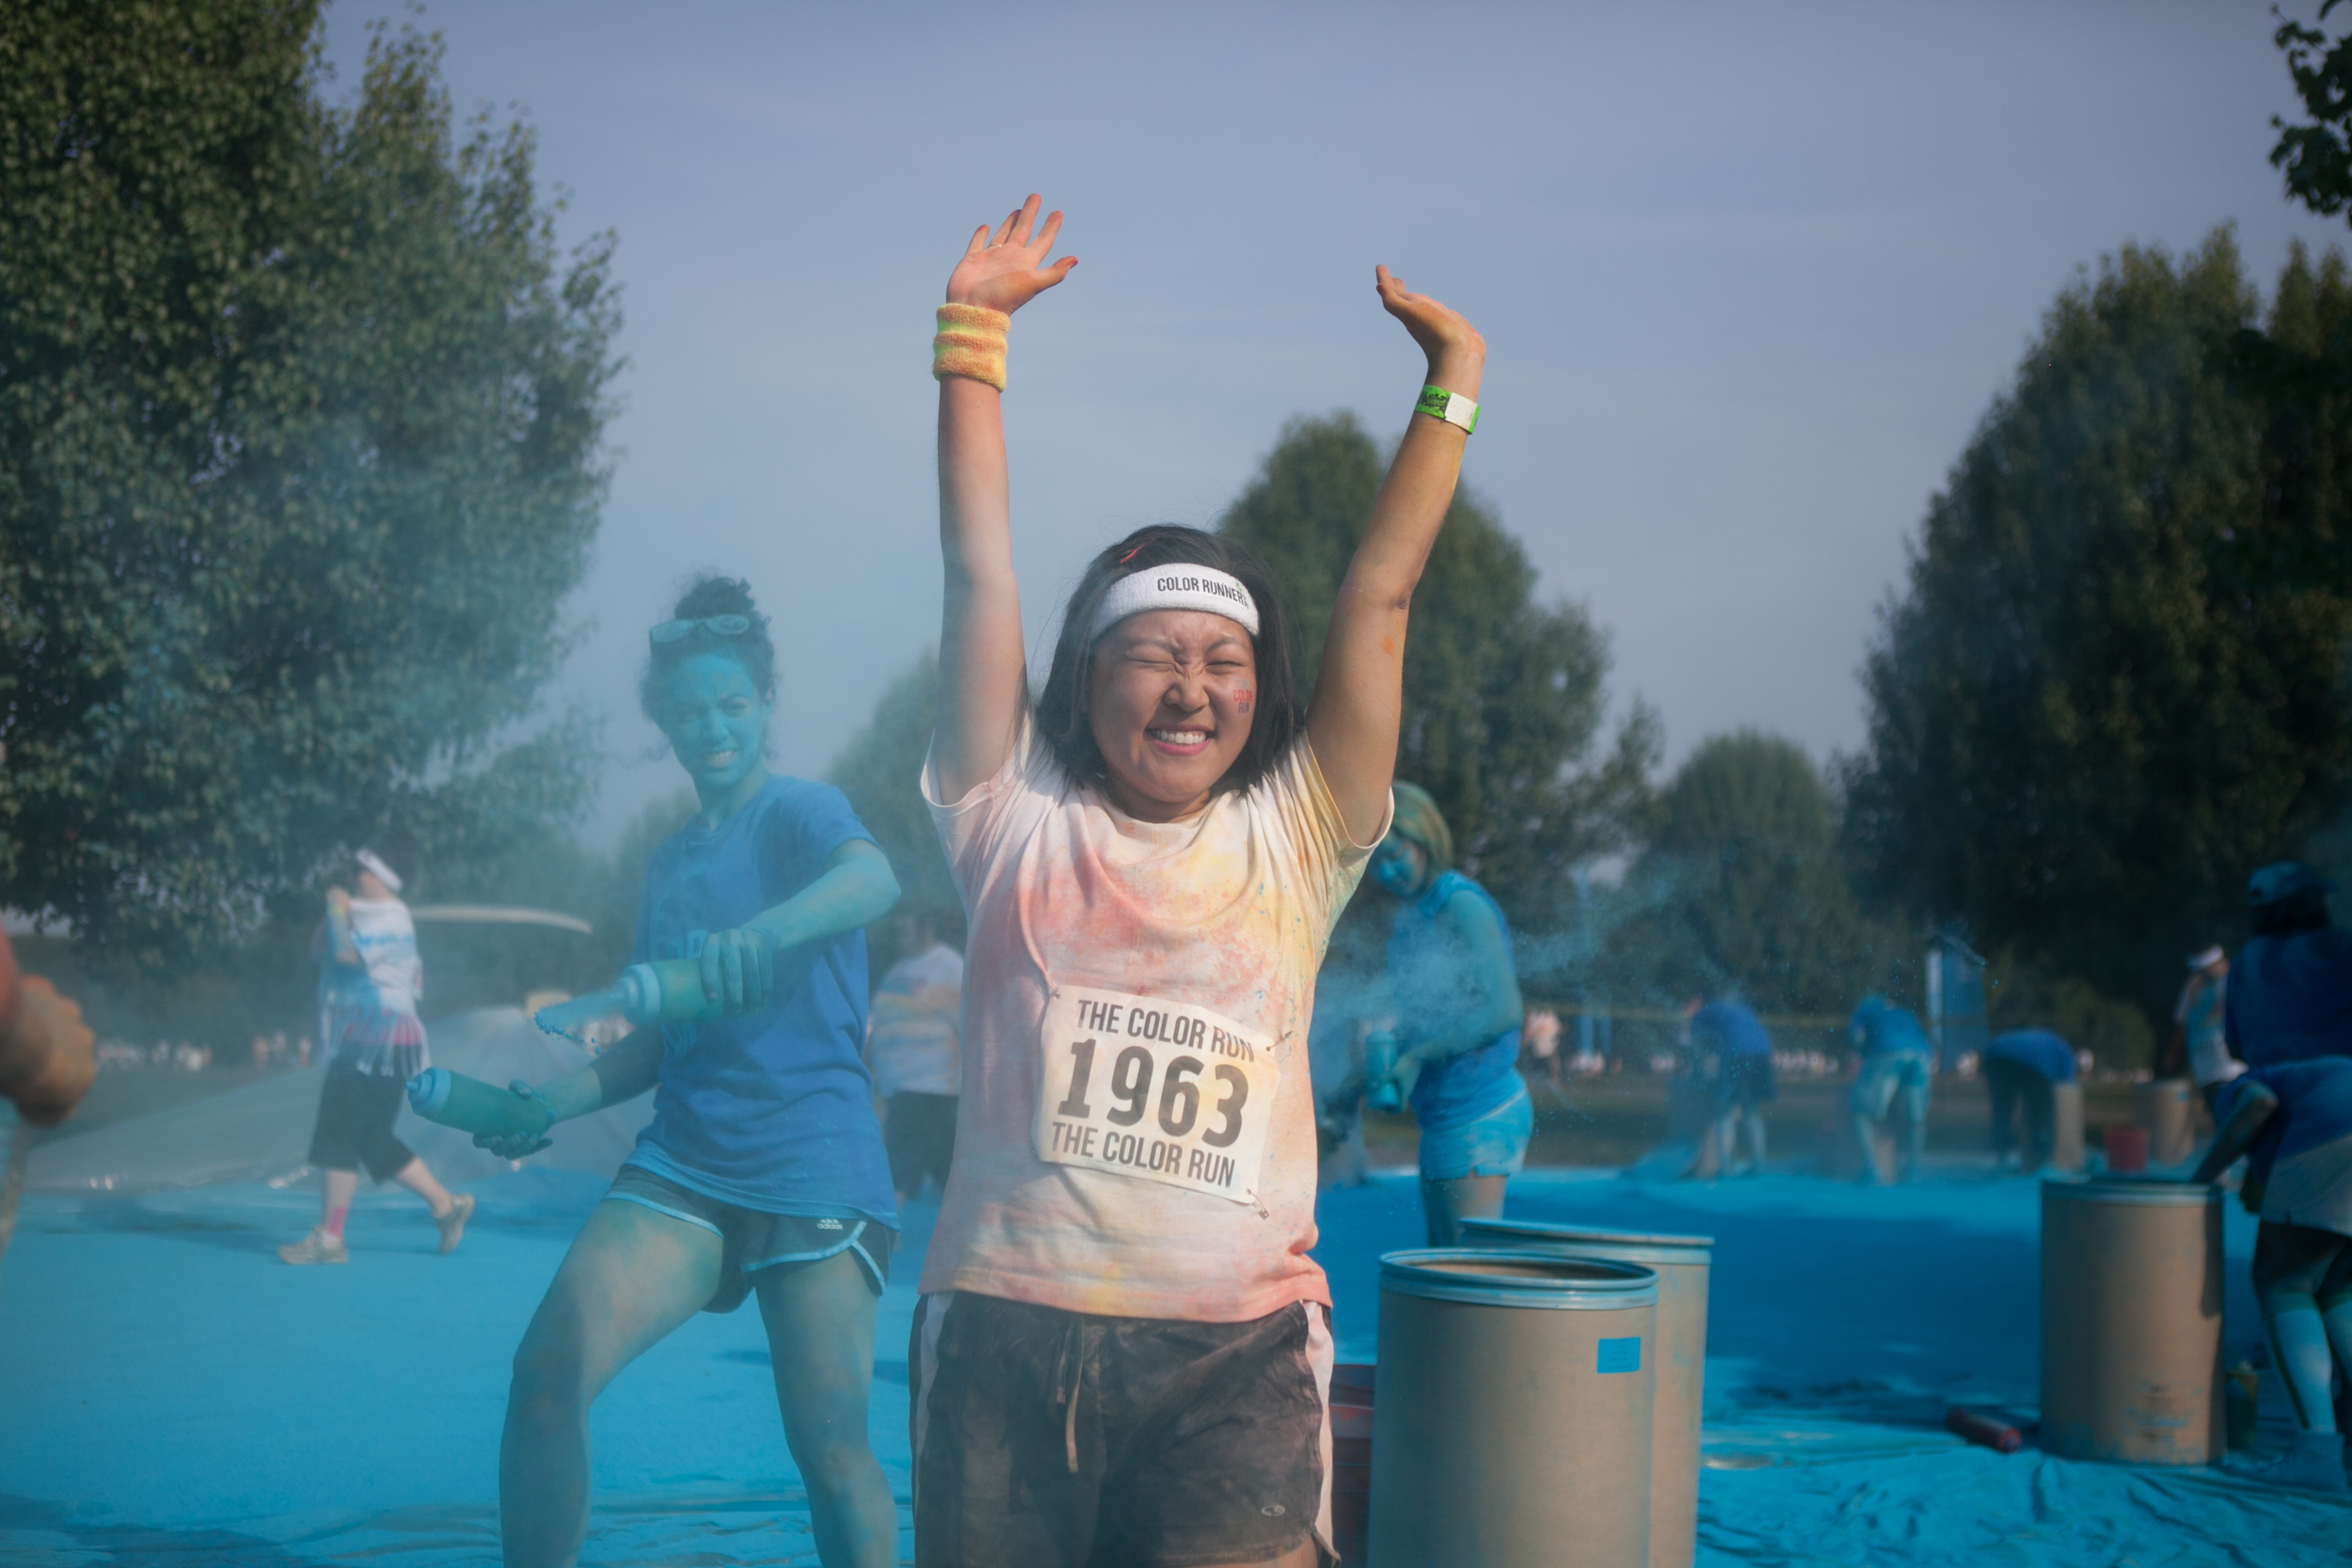 colorrun2012 (54 of 104).jpg